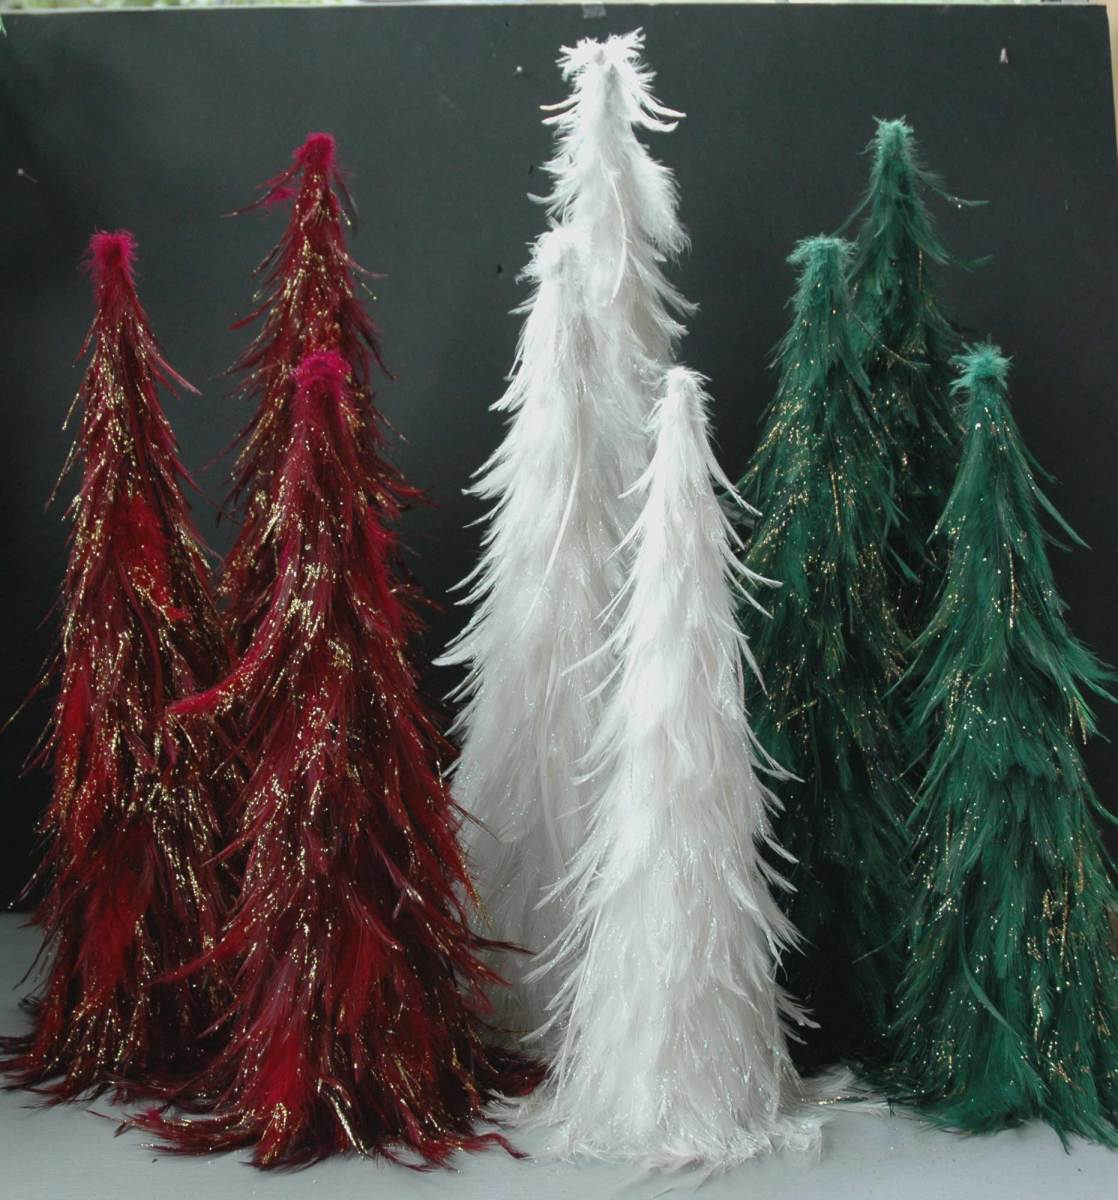 To make thinner or shorter trees like in this little forest, carve away portions of the floral cone before decorating.